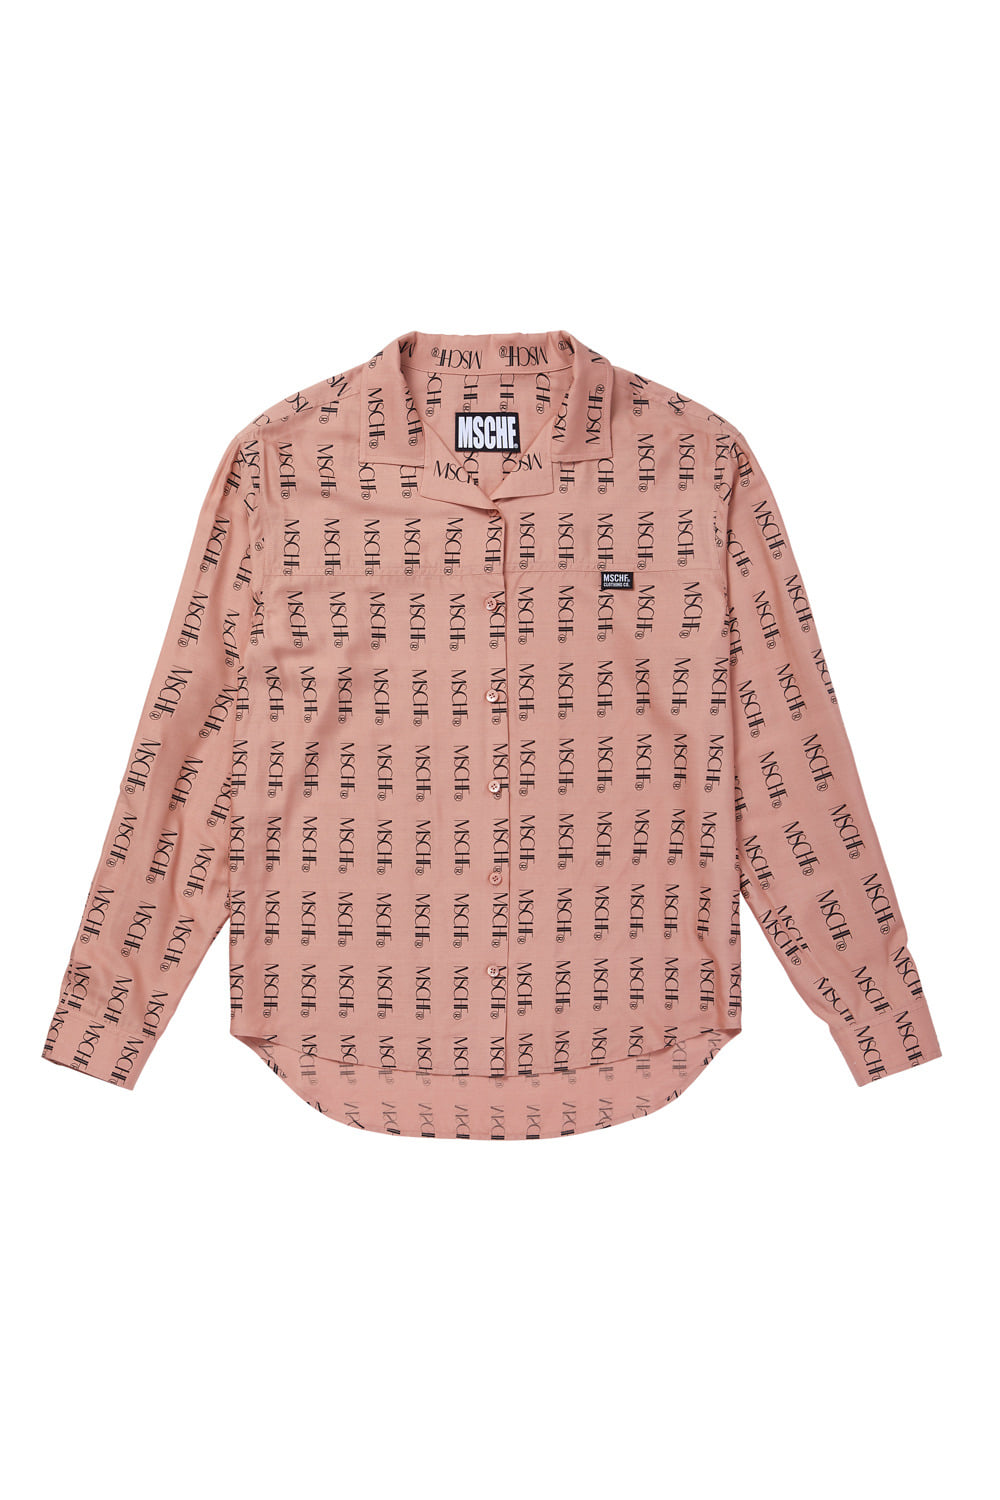 MSCHF REPEAT LOGO SHIRT_peach